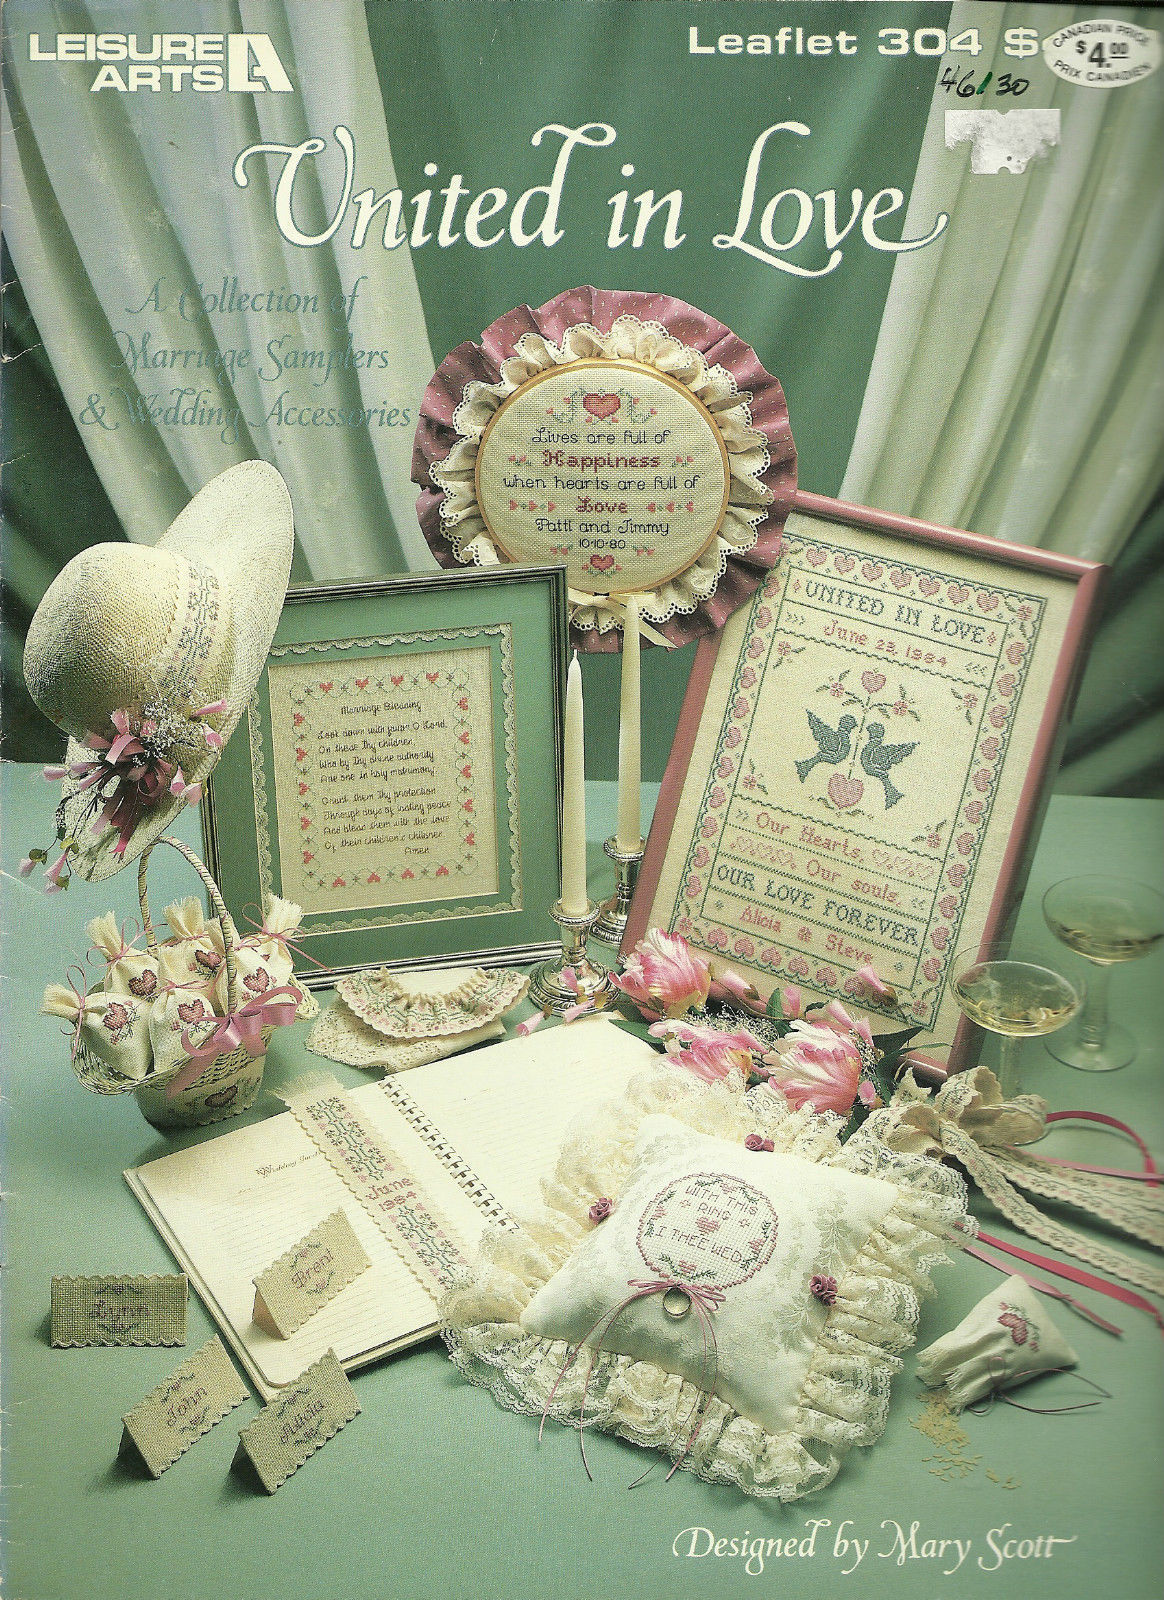 United In Love Leisure Arts Cross Stitch Pattern Leaflet No. 304